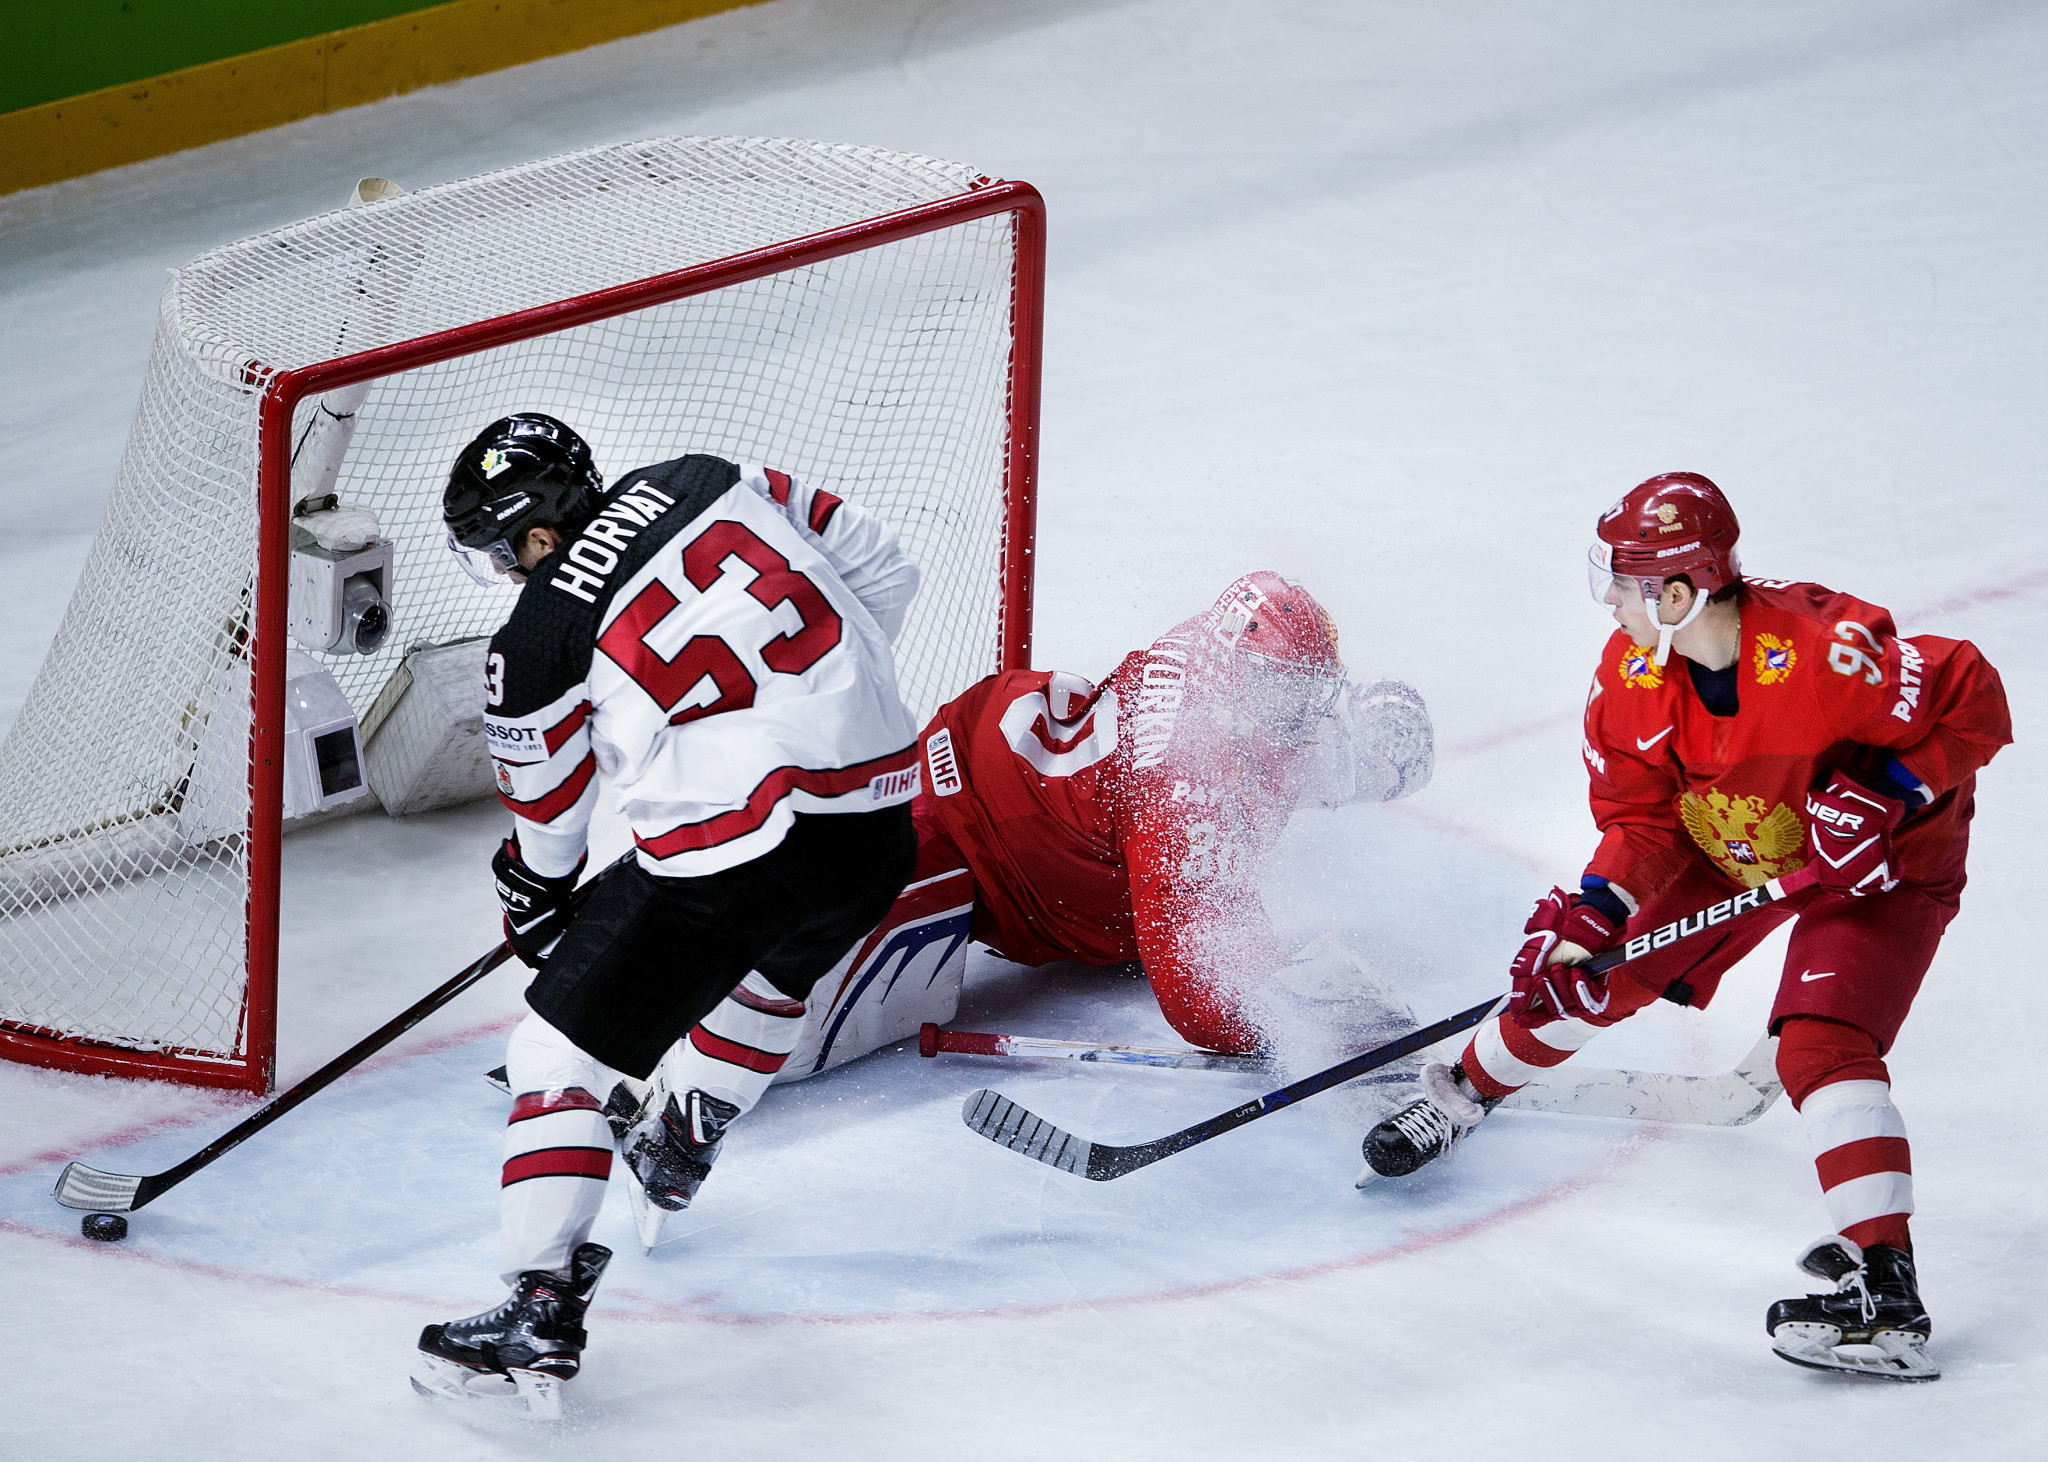 Canada earned an overtime victory against Russia to reach the semi-finals ©Getty Images